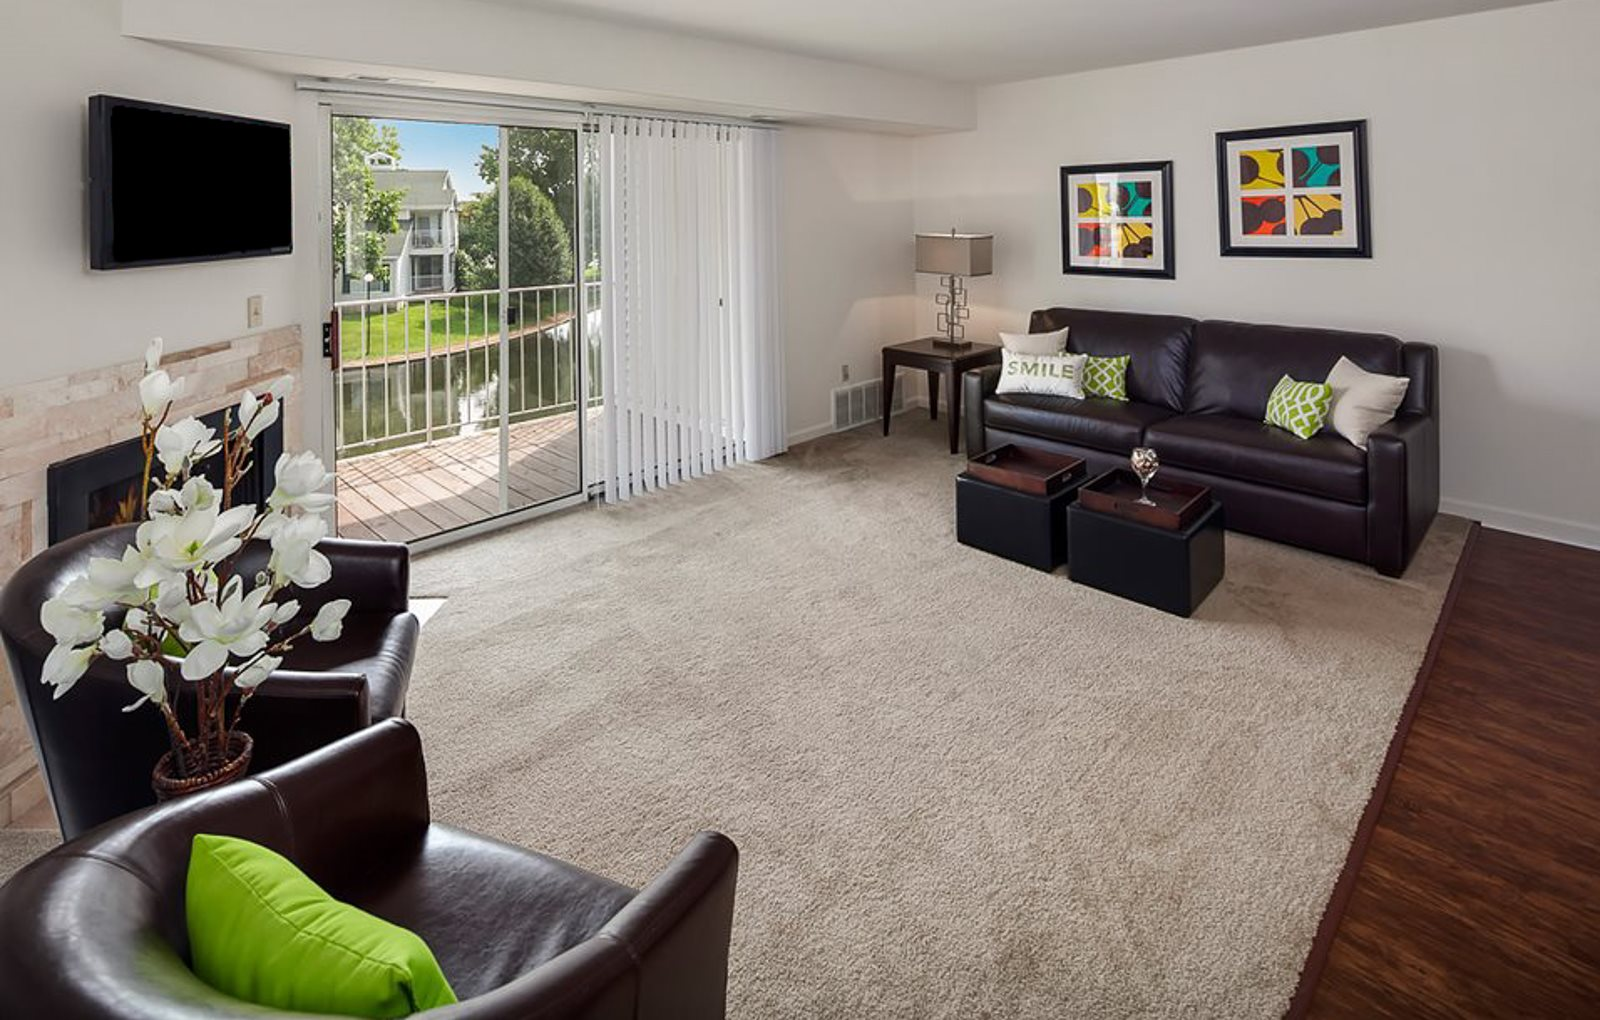 Swimming Pool at Drakes Pond Apartments in Kalamazoo MI